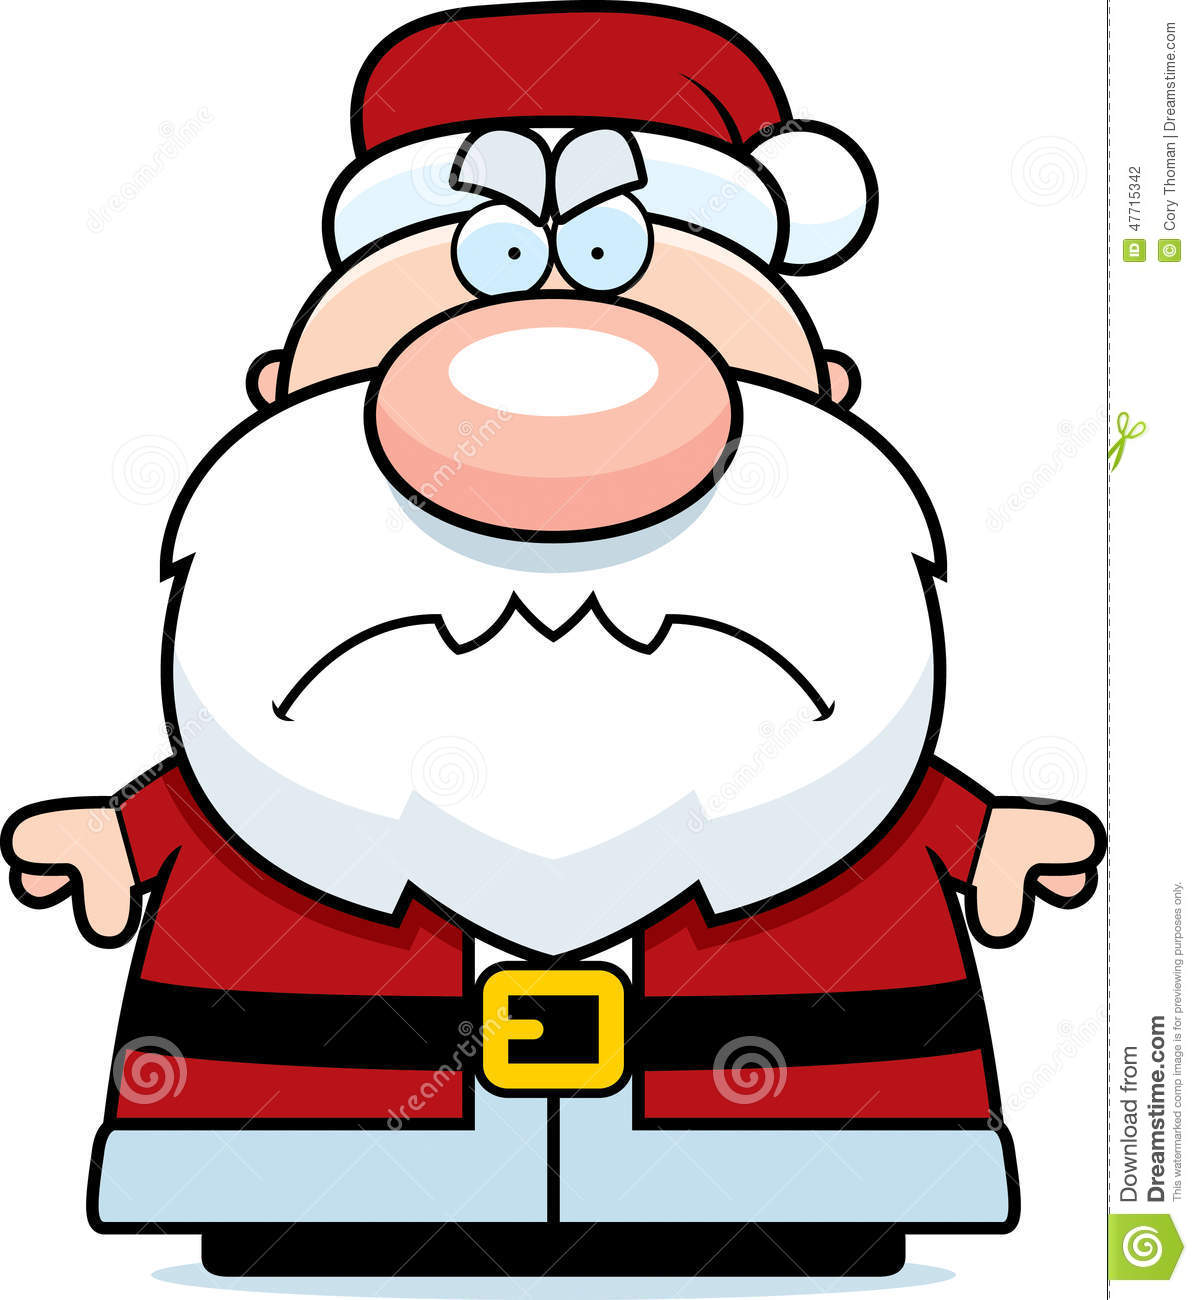 Angry Cartoon Santa Claus stock vector. Illustration of angry.